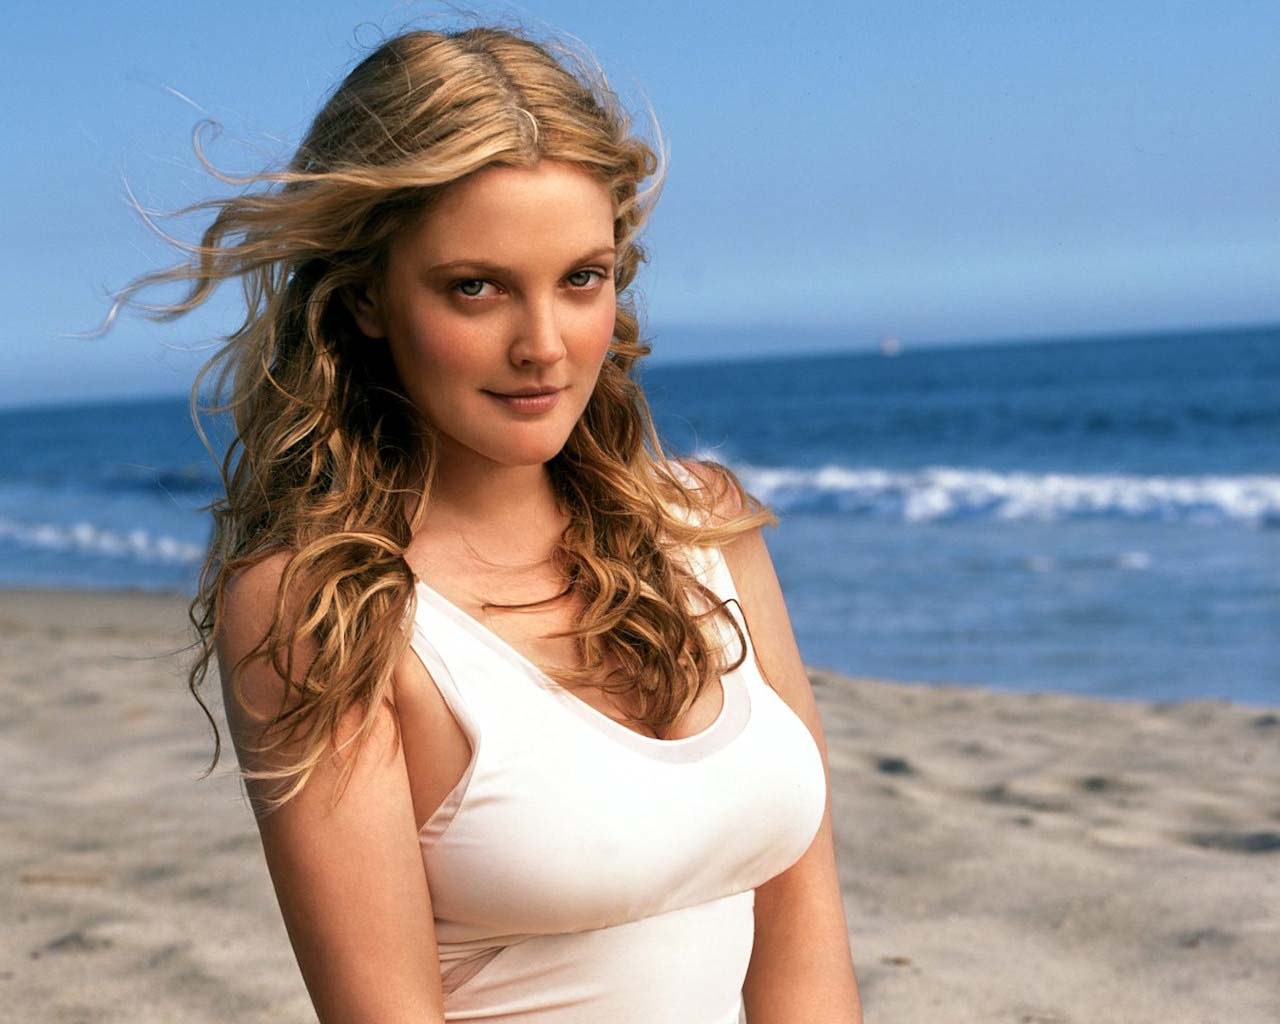 http://www.tiptoptens.com/wp-content/uploads/2011/01/Hot-Drew-Barrymore-top-paid-actress-2011.jpg